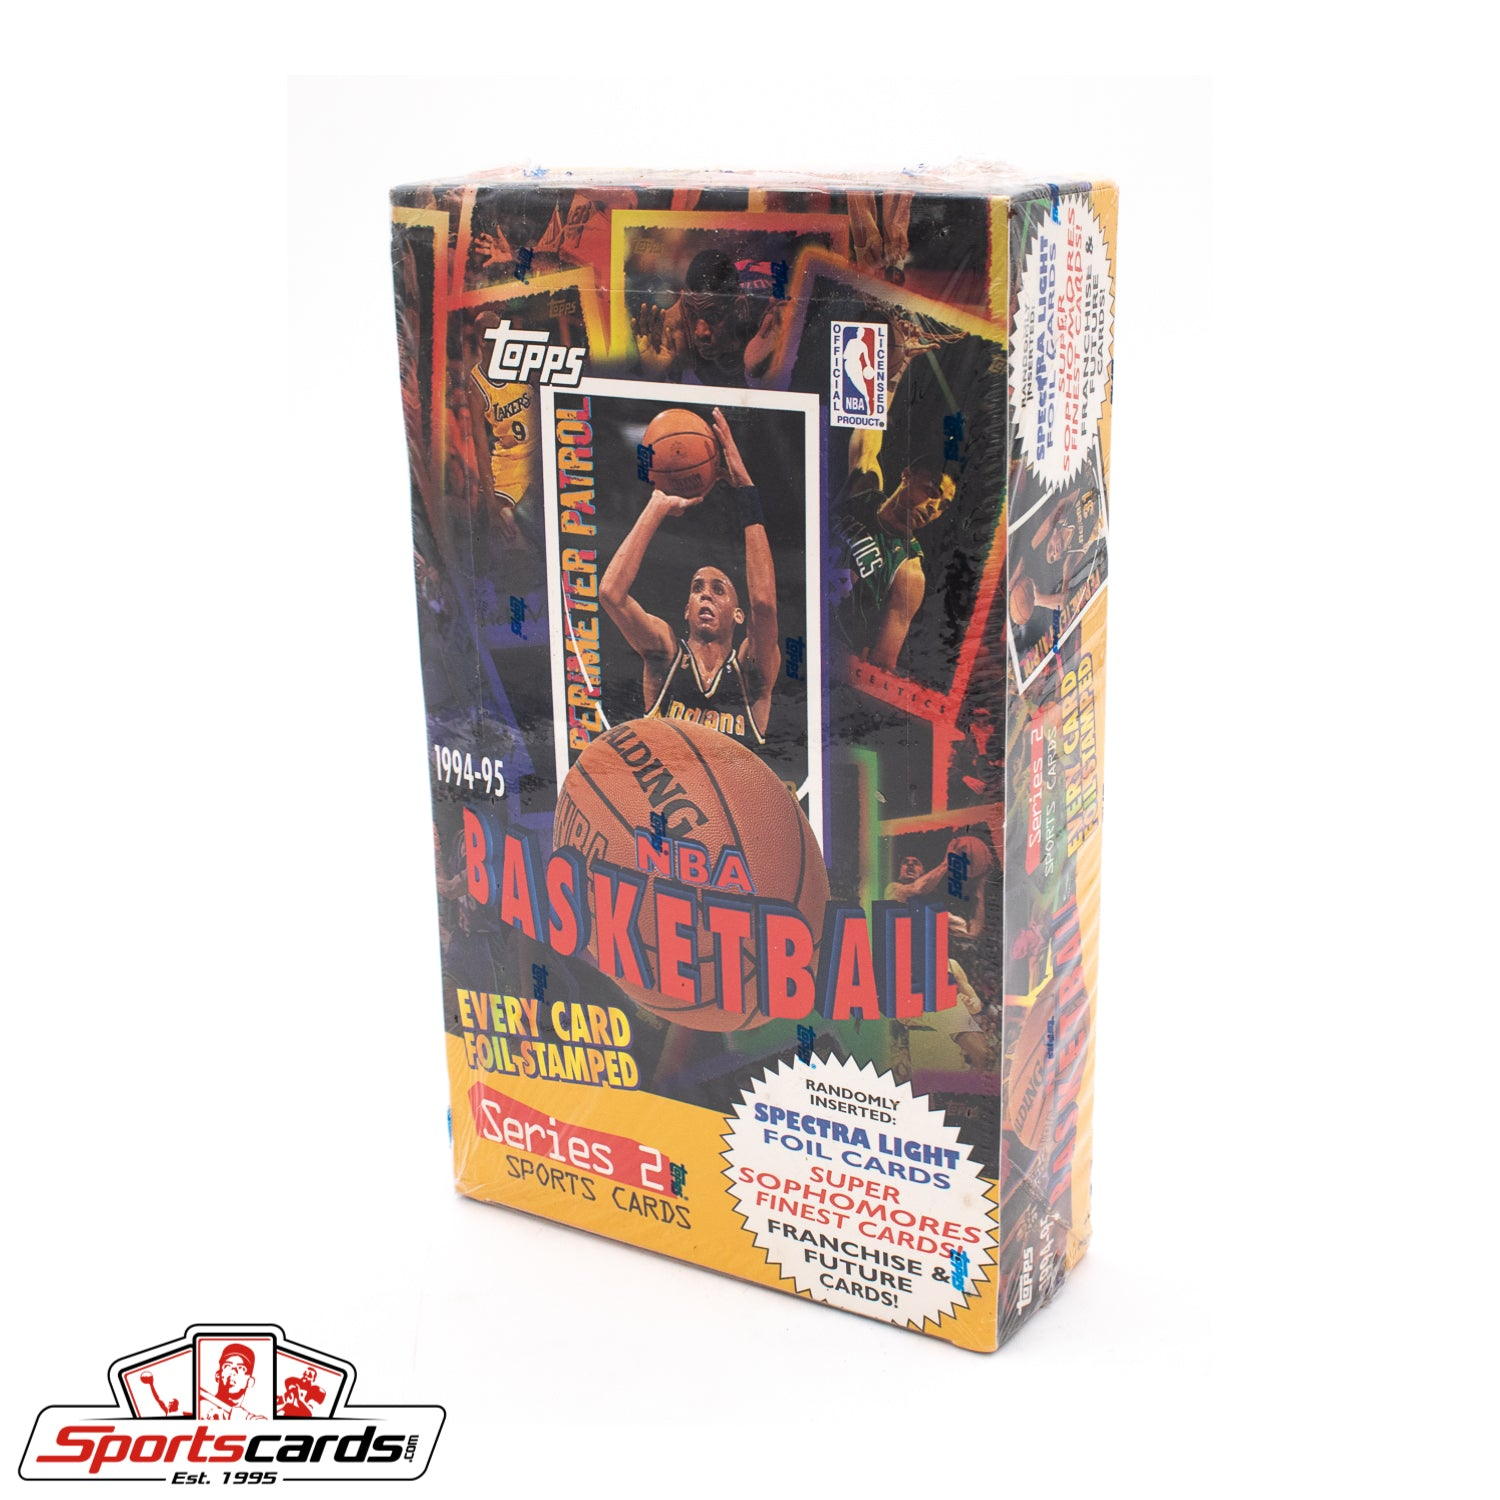 1994-95 Topps Basketball Series 2 Factory Sealed Box